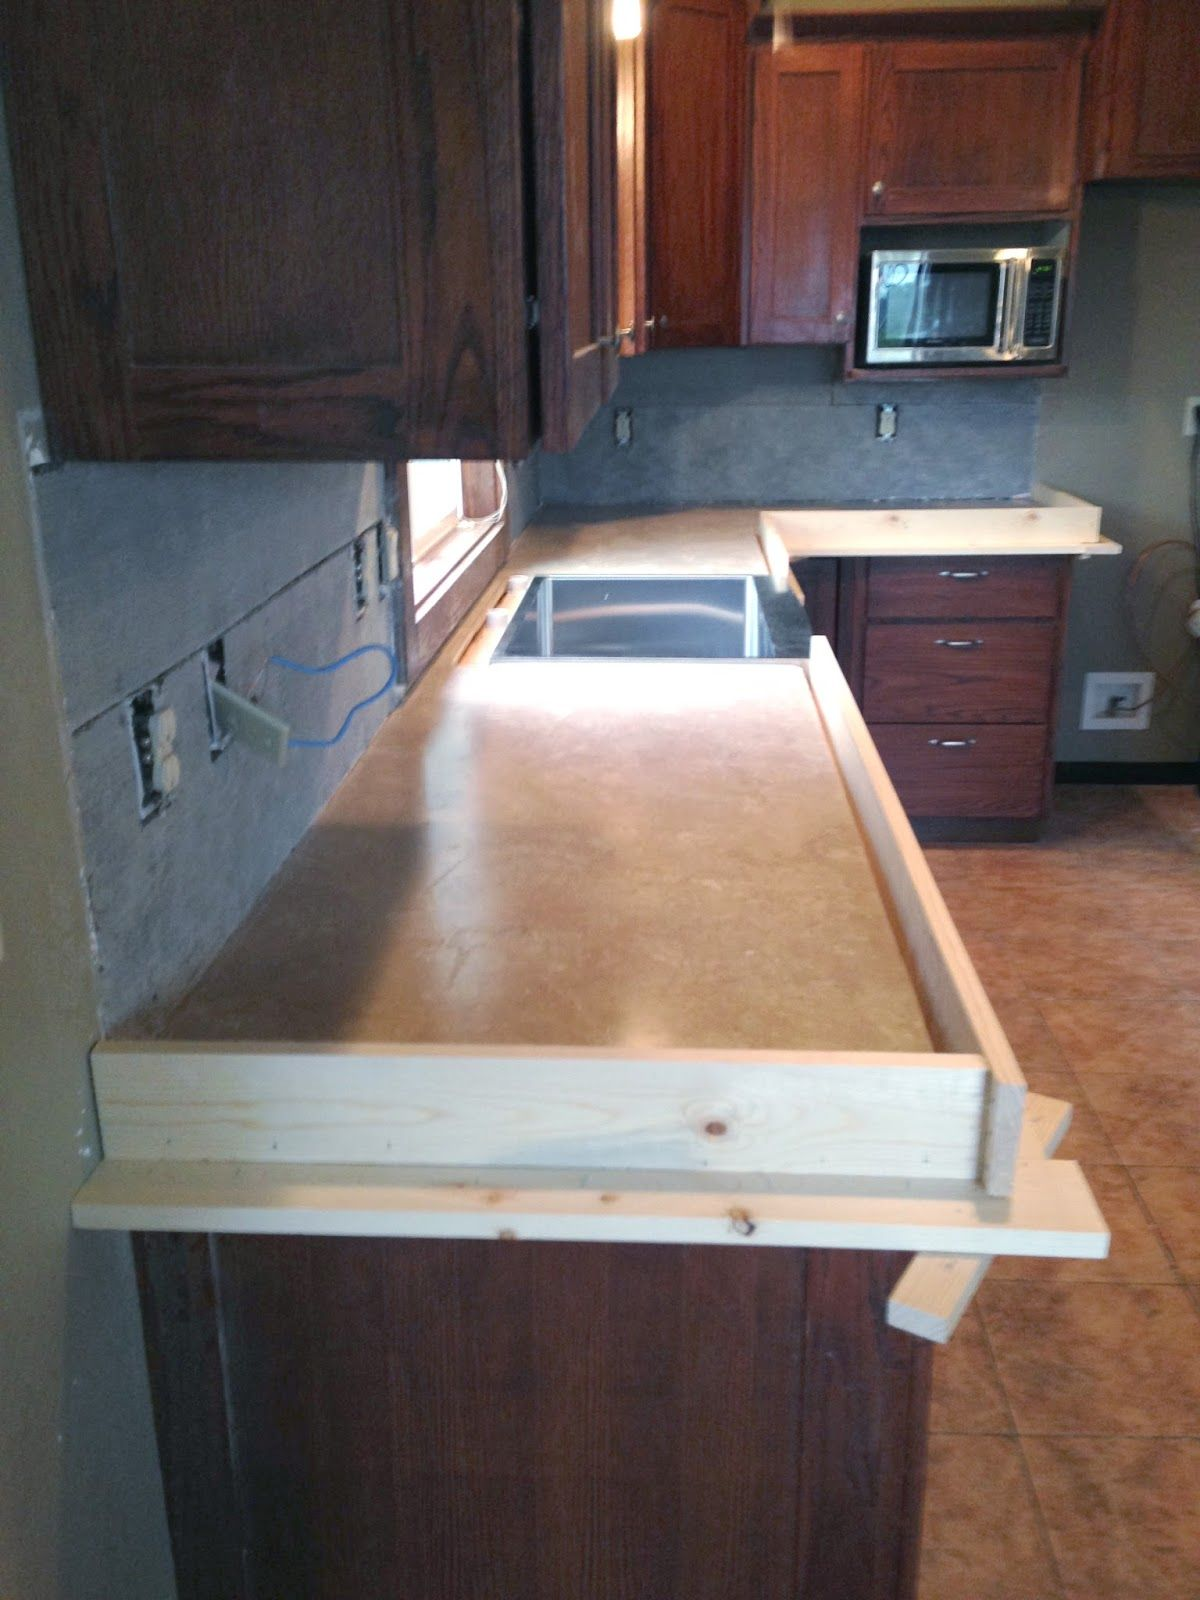 Diy Concrete Counters Poured Over Laminate Diy Concrete Countertops Concrete Kitchen Concrete Countertops Kitchen